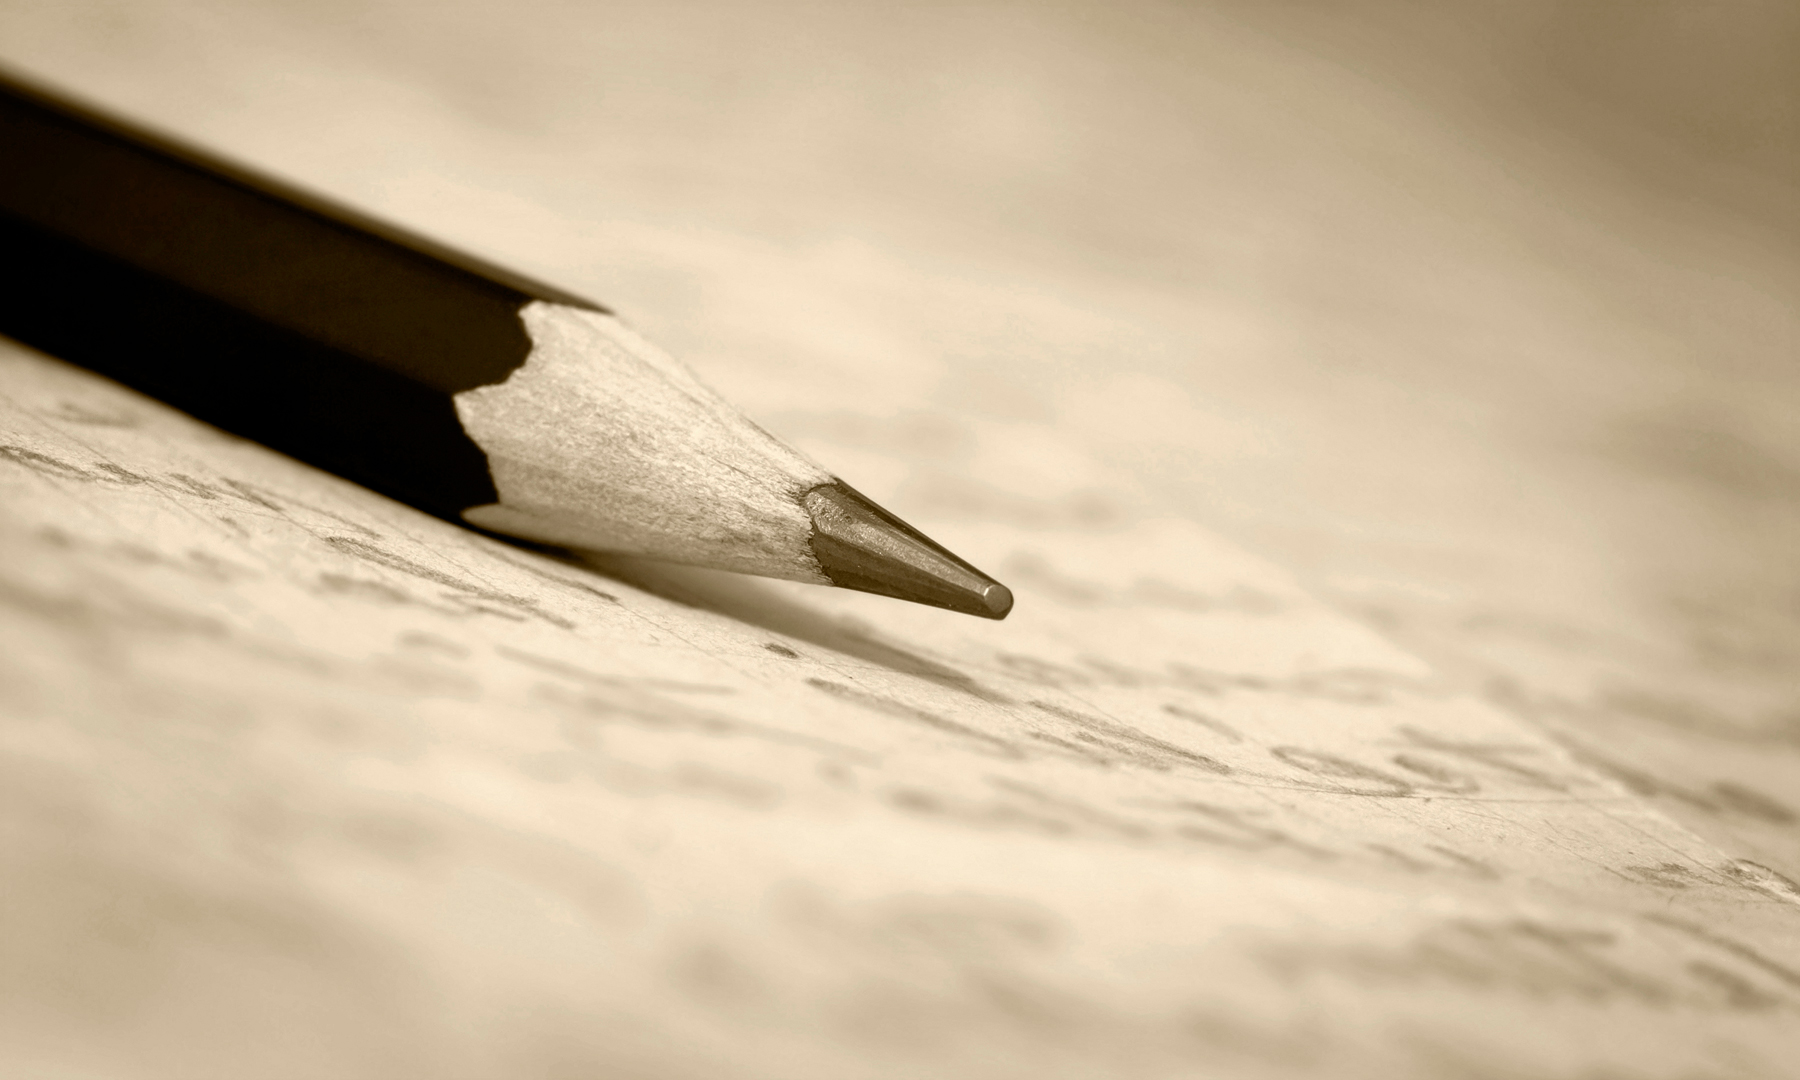 A pencil sitting on top of a sheet of paper with writing on it.